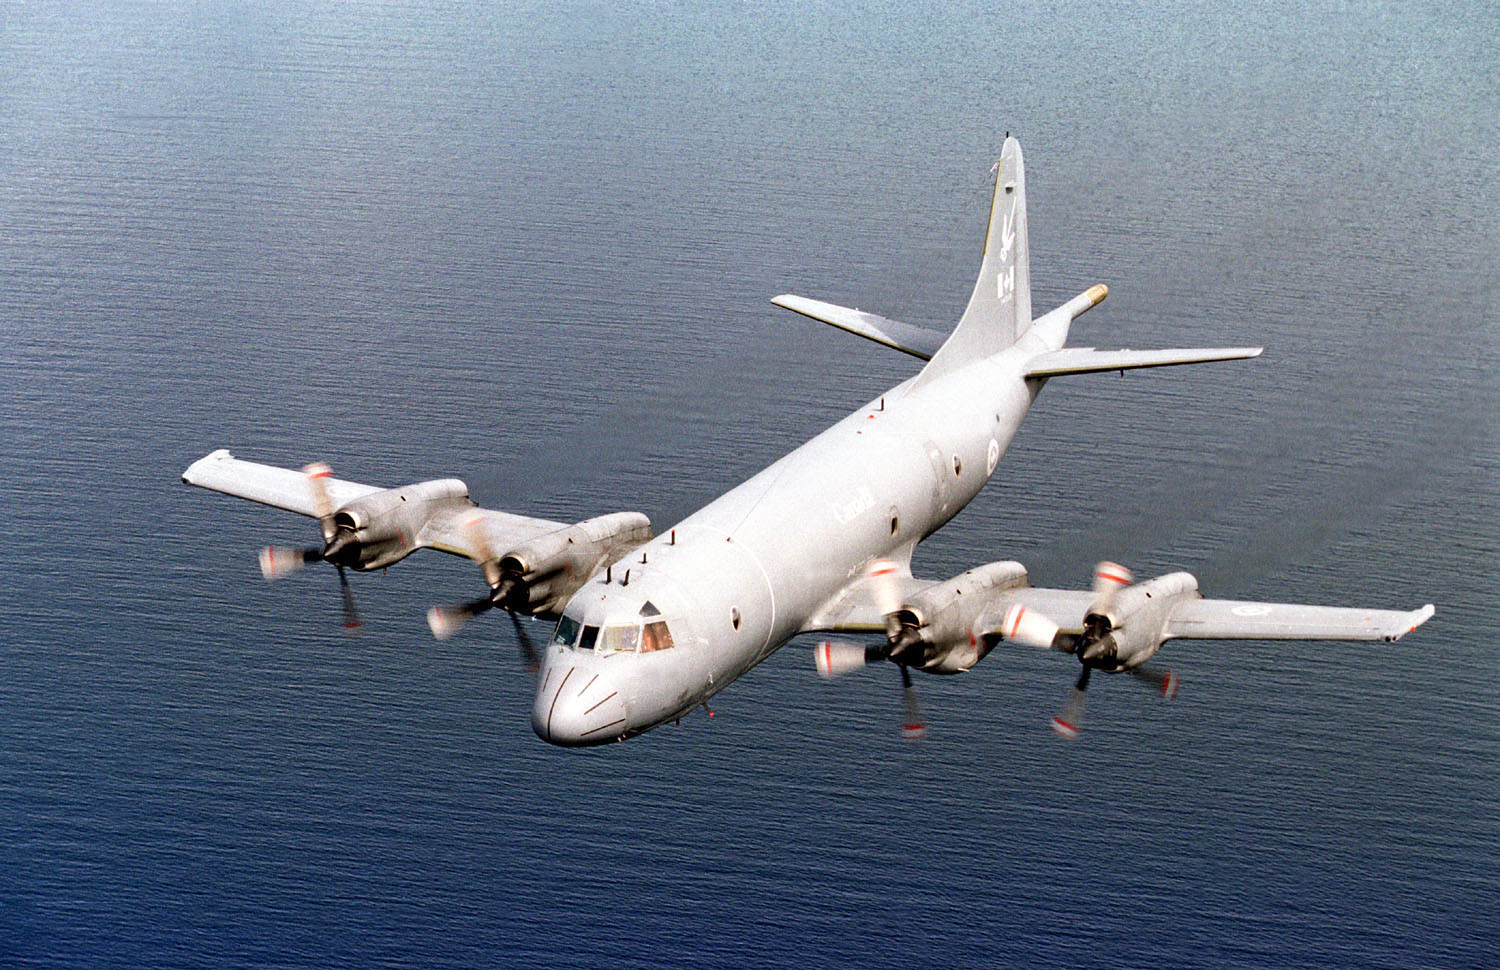 CP-140 Aurora in Flight